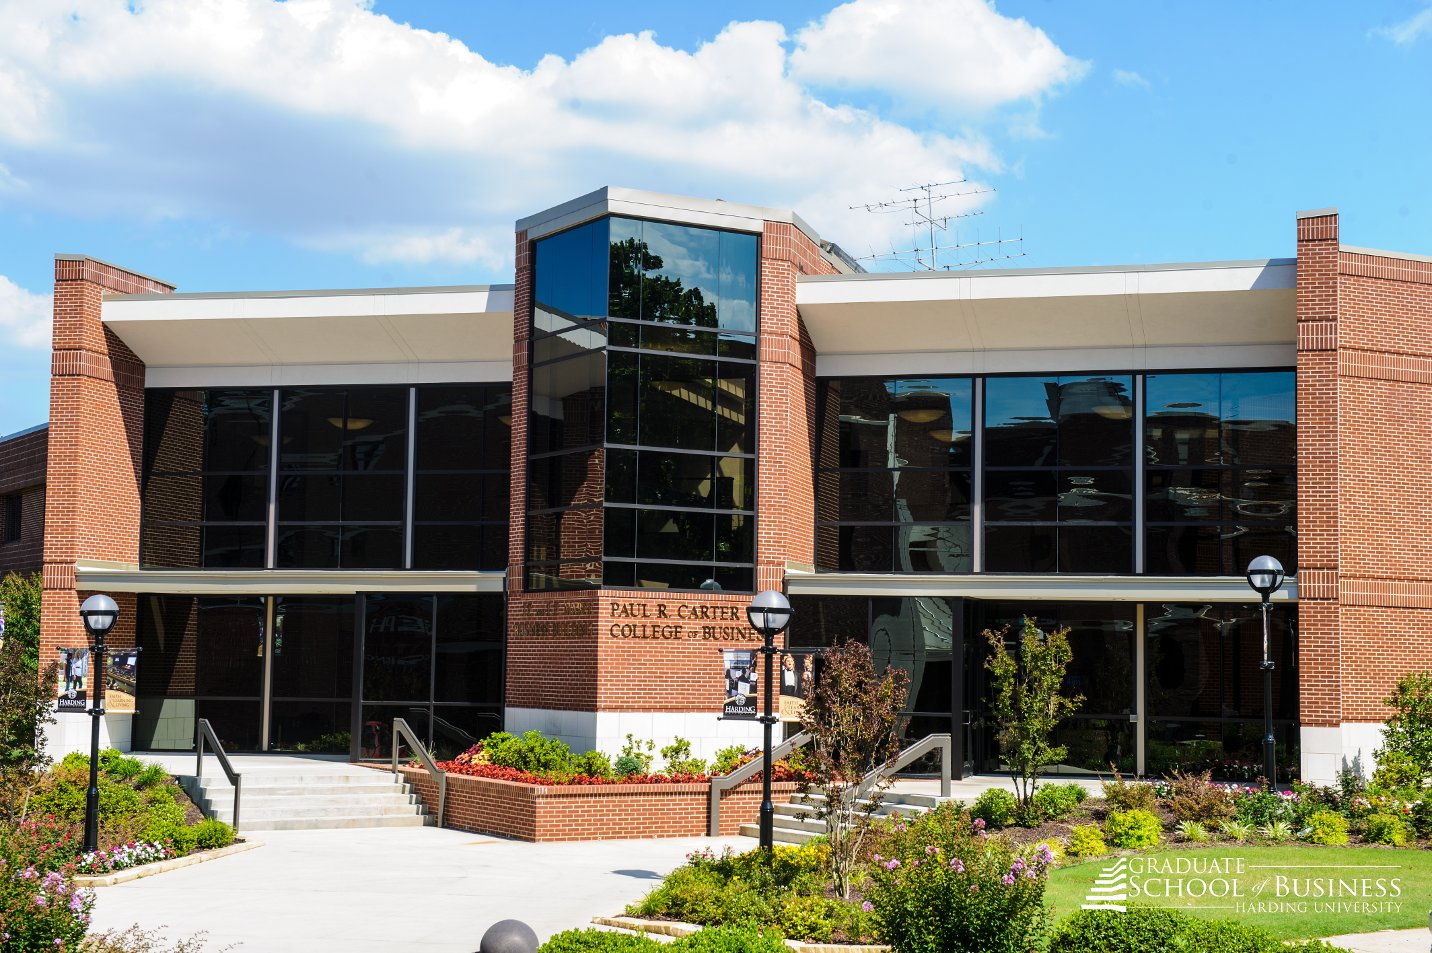 Receive an ethics based mba at the harding university graduate school of business